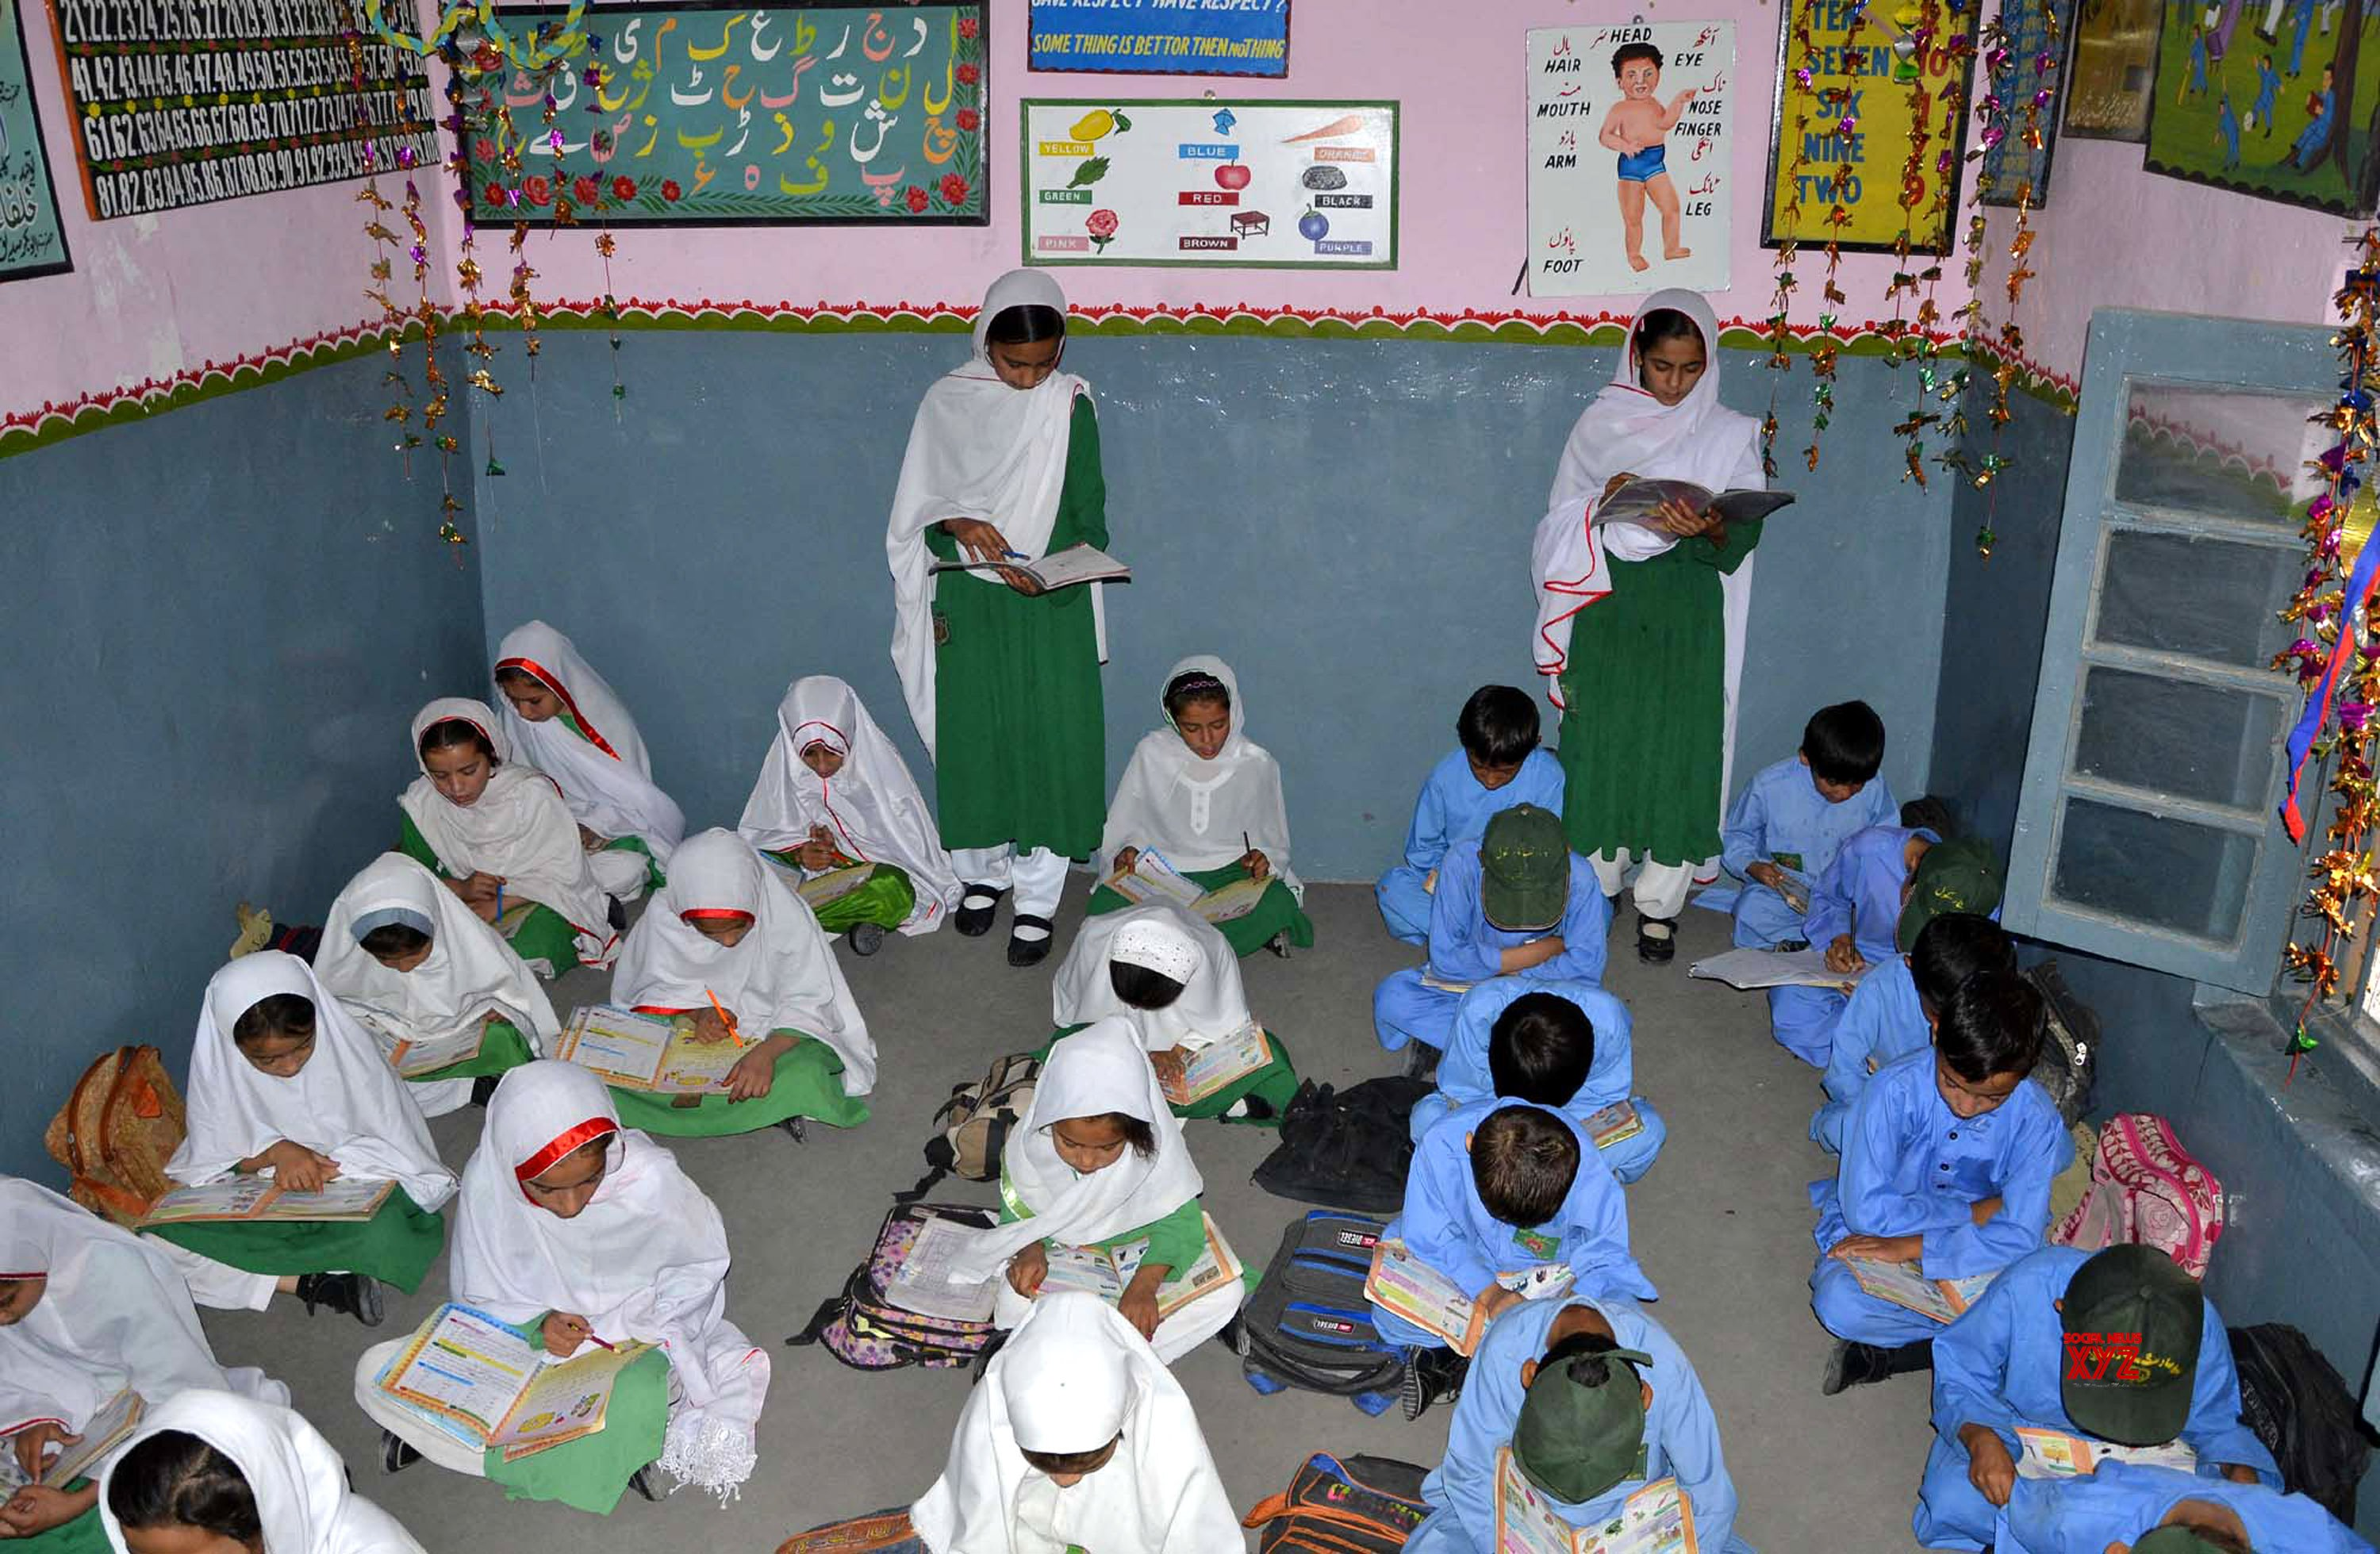 Dress code issued for schoolgirls in Pak district